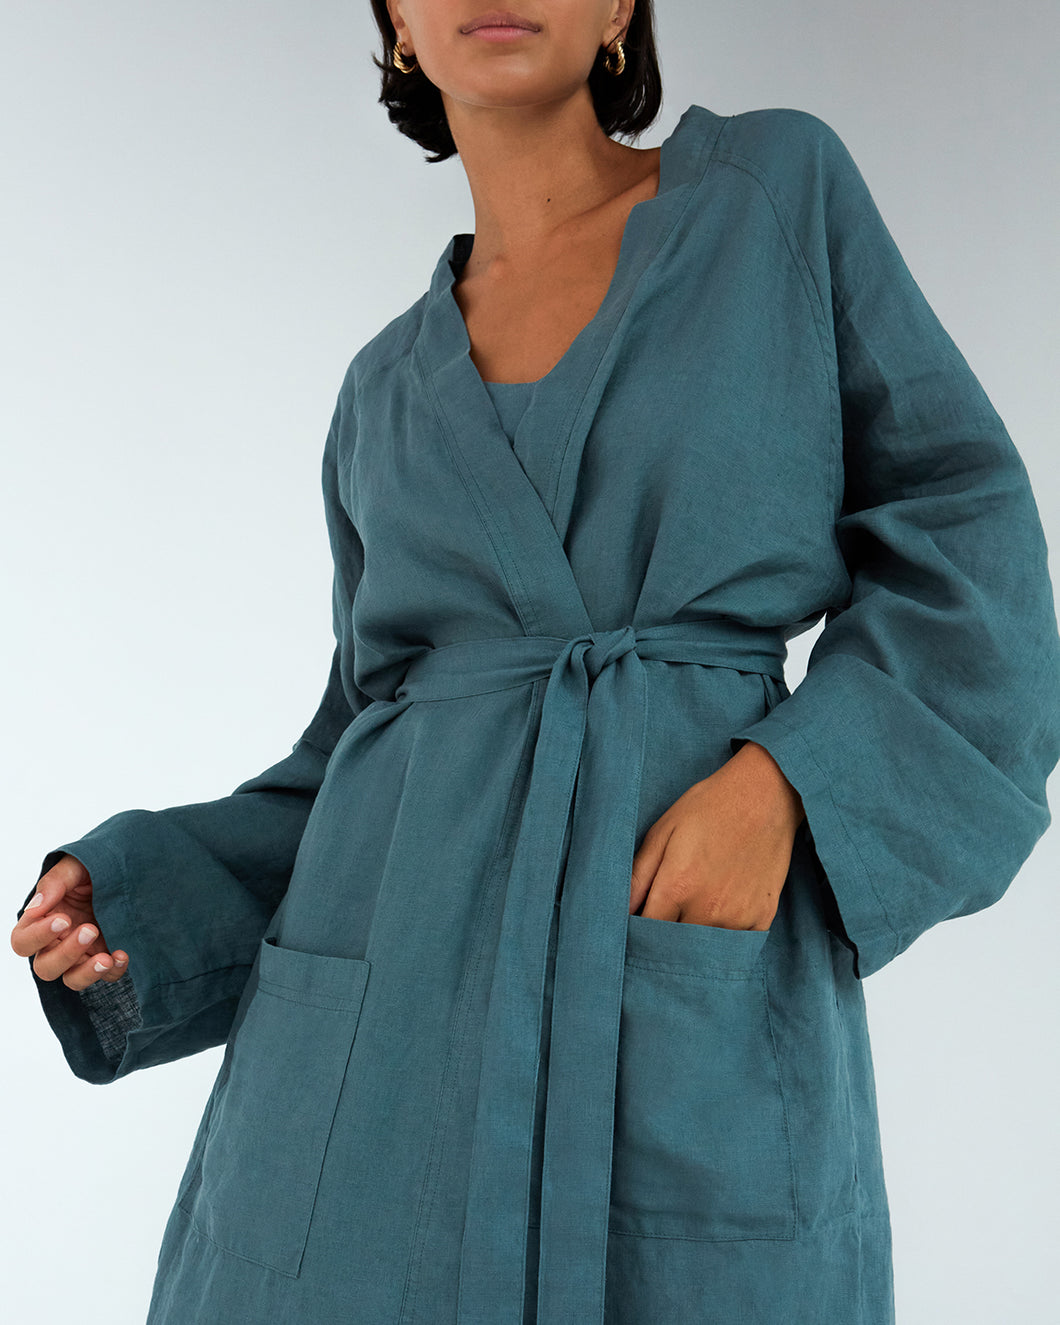 100% French Flax Linen Classic Robe in Petrol